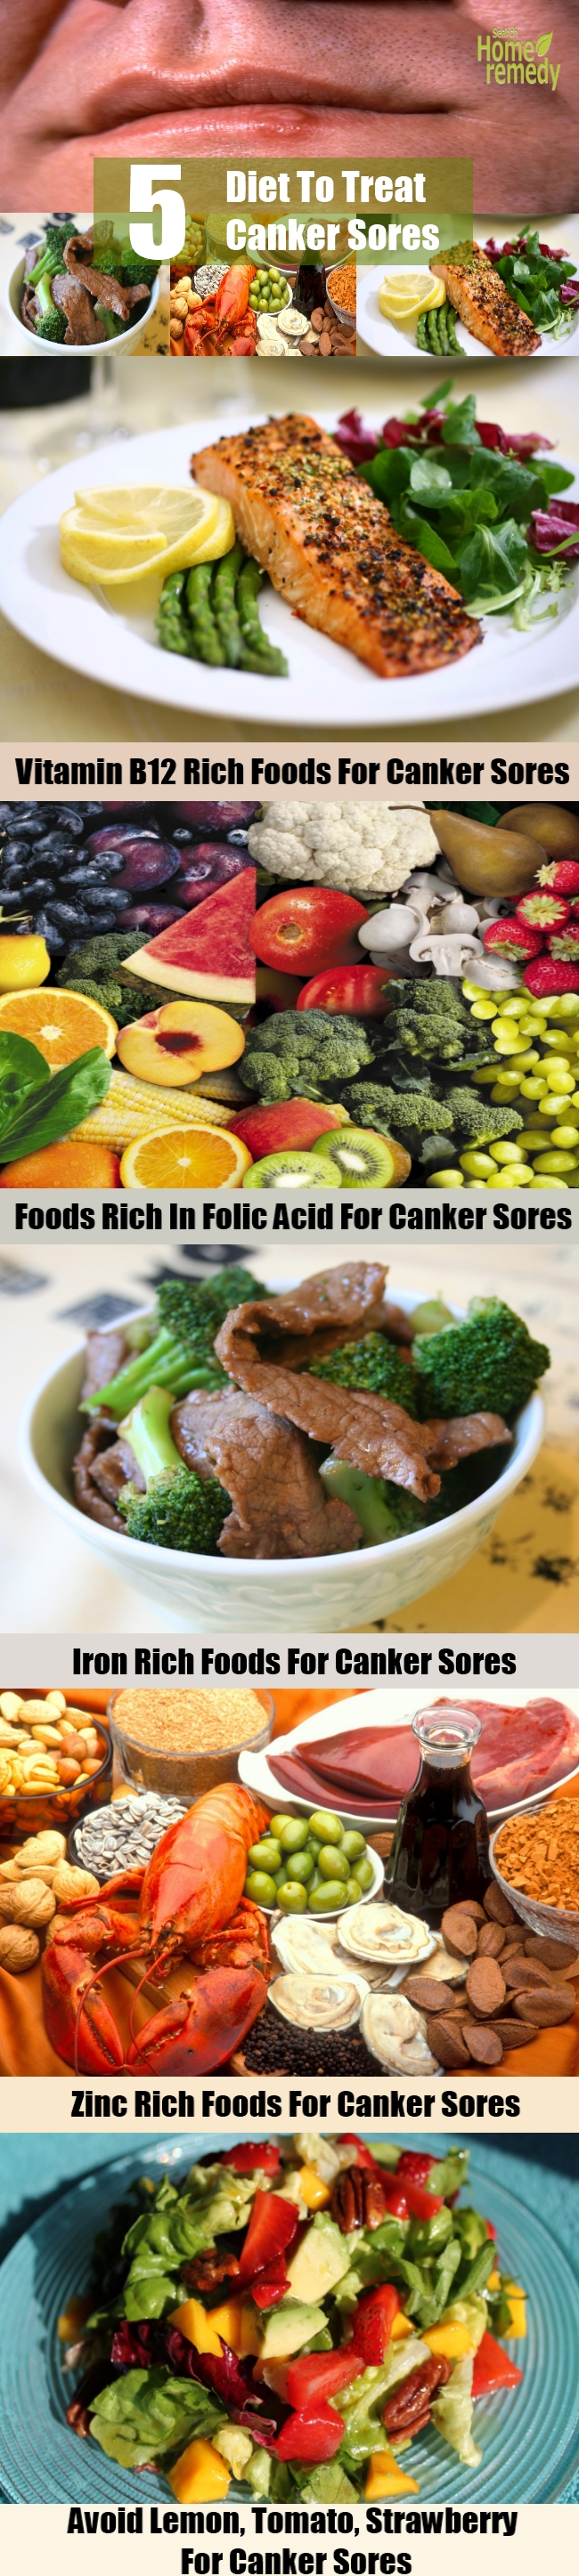 5 Diet To Treat Canker Sores